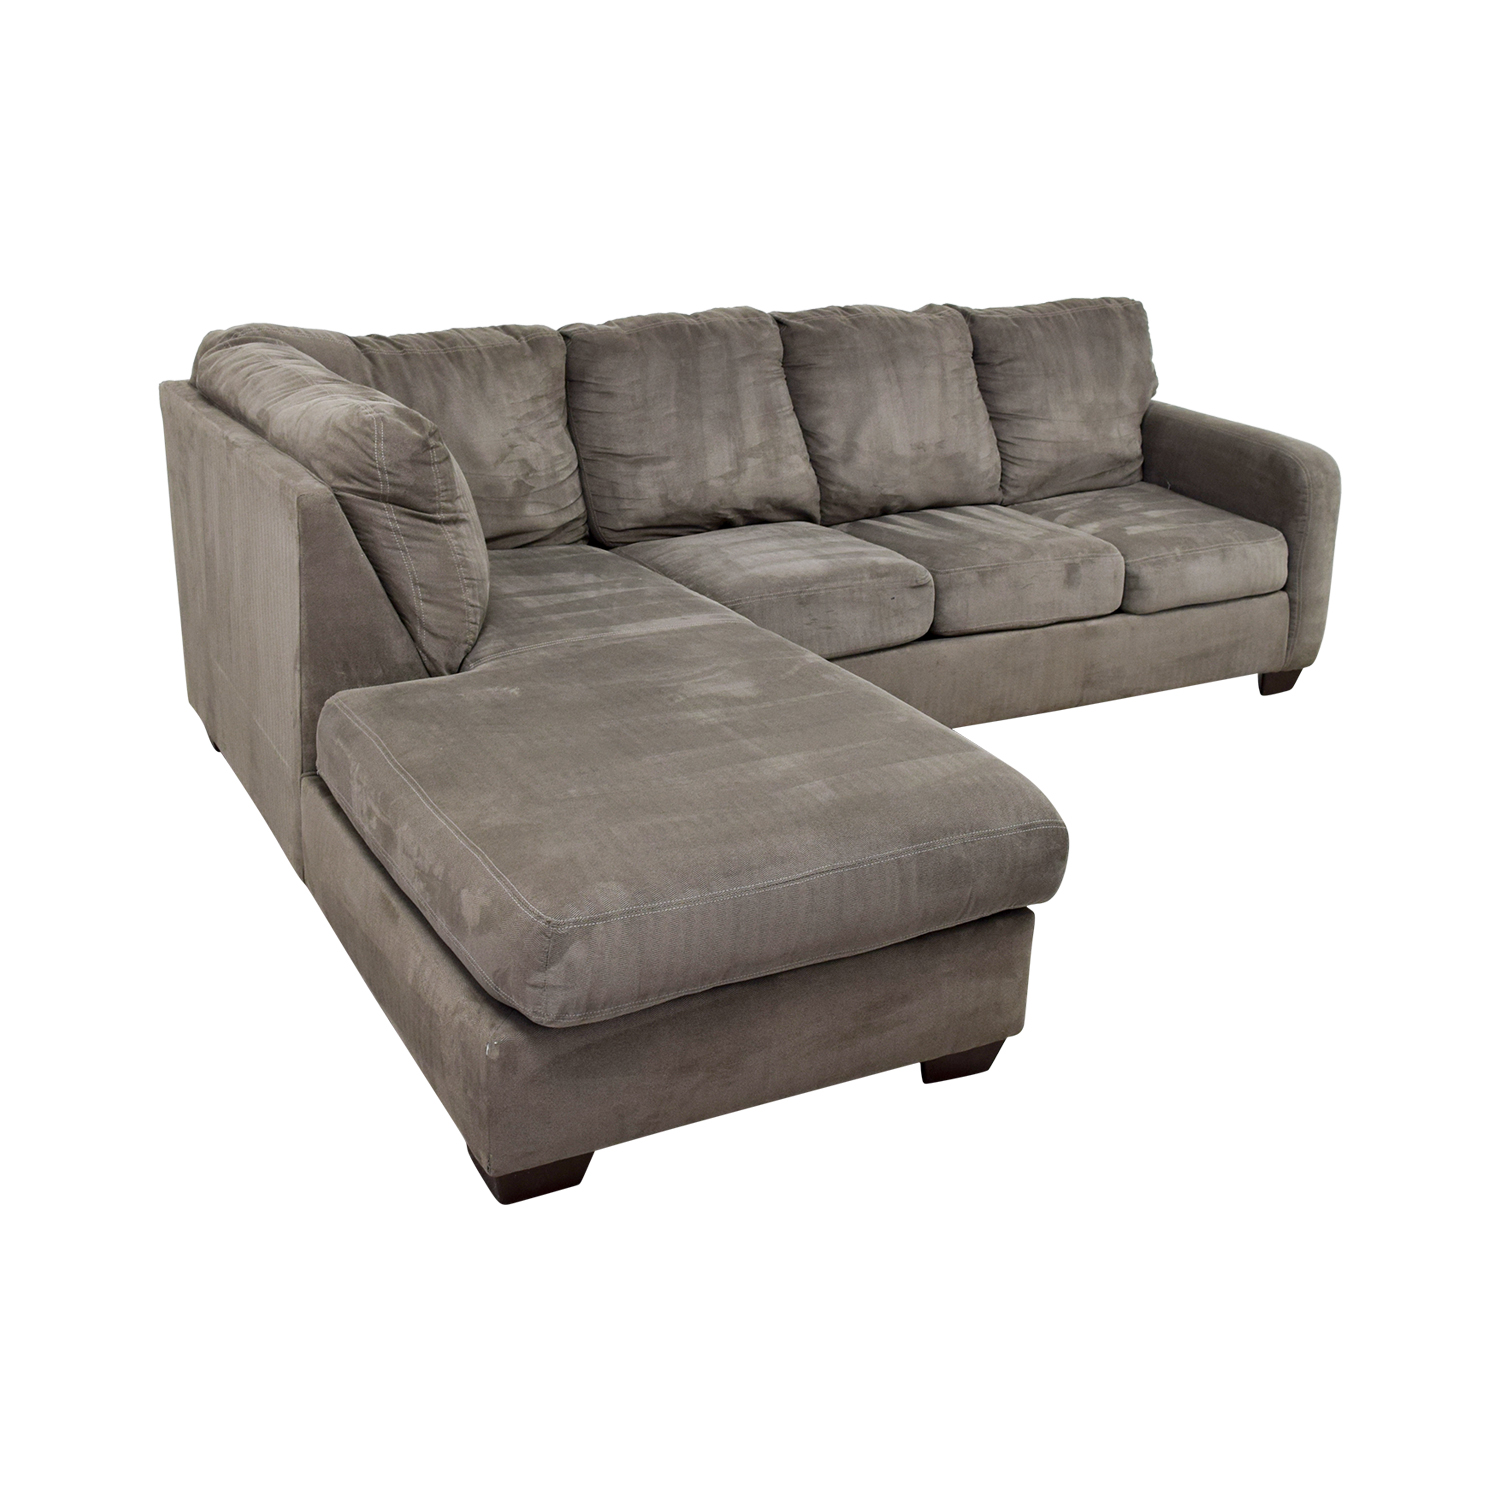 Living Spaces Living Spaces Zella Charcoal Chaise Sectional grey